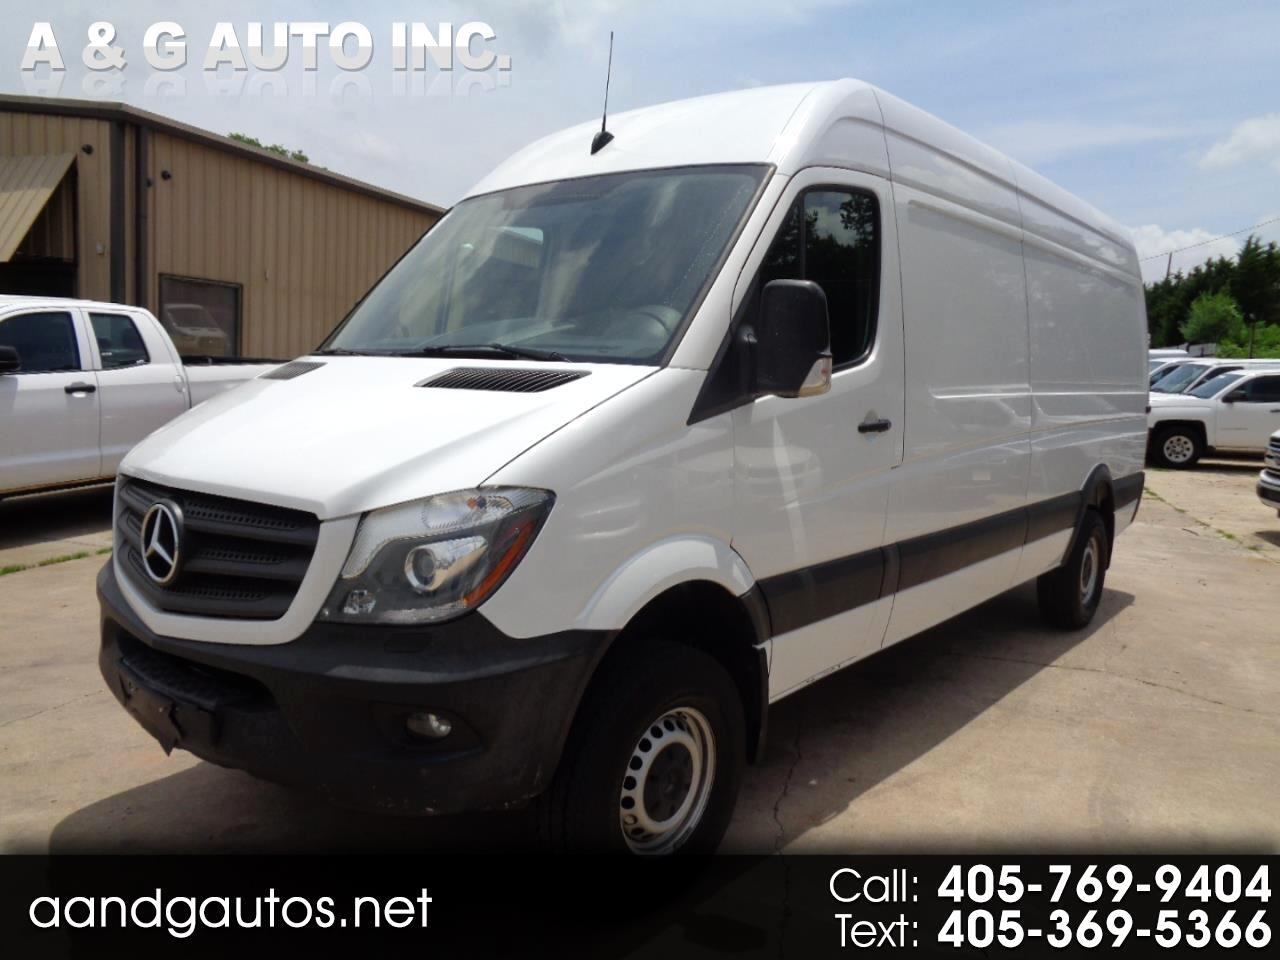 2016 Mercedes-Benz Sprinter Cargo Van 2500 High Roof V6 170